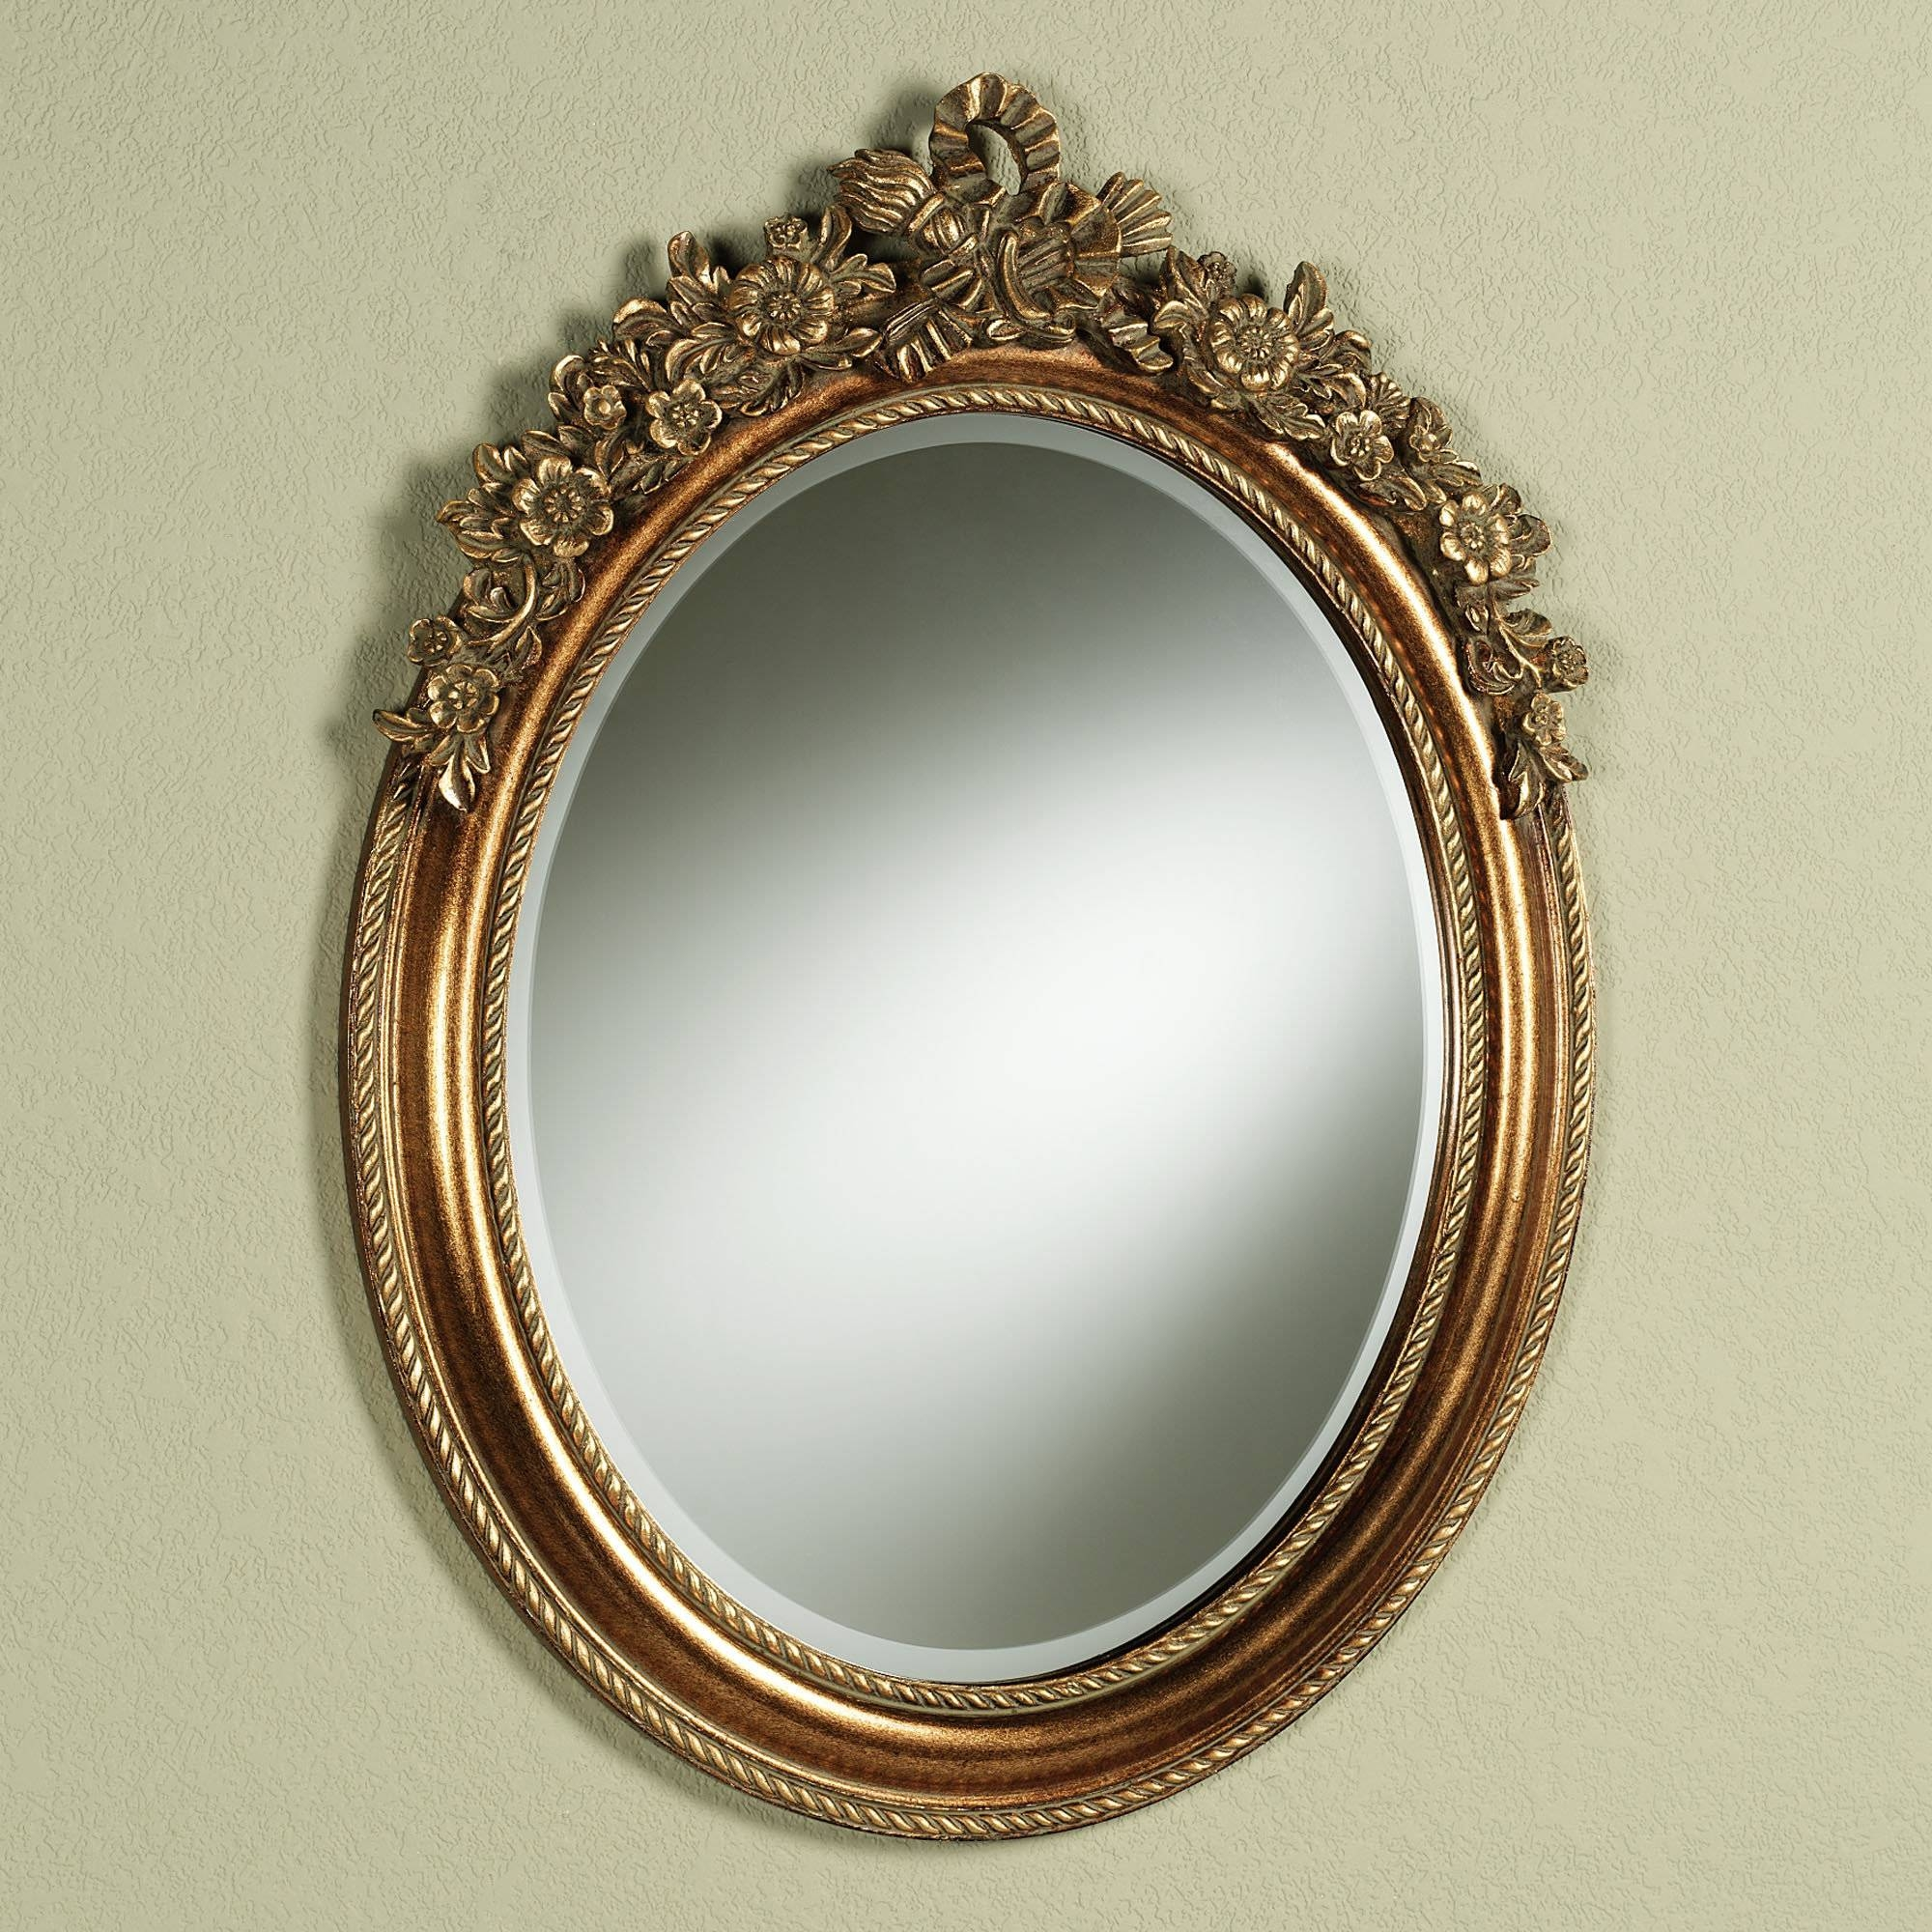 Small Oval Mirror, Large Oval Mirrors For Walls Oval Wall Mirror regarding Oval Mirrors for Walls (Image 23 of 25)